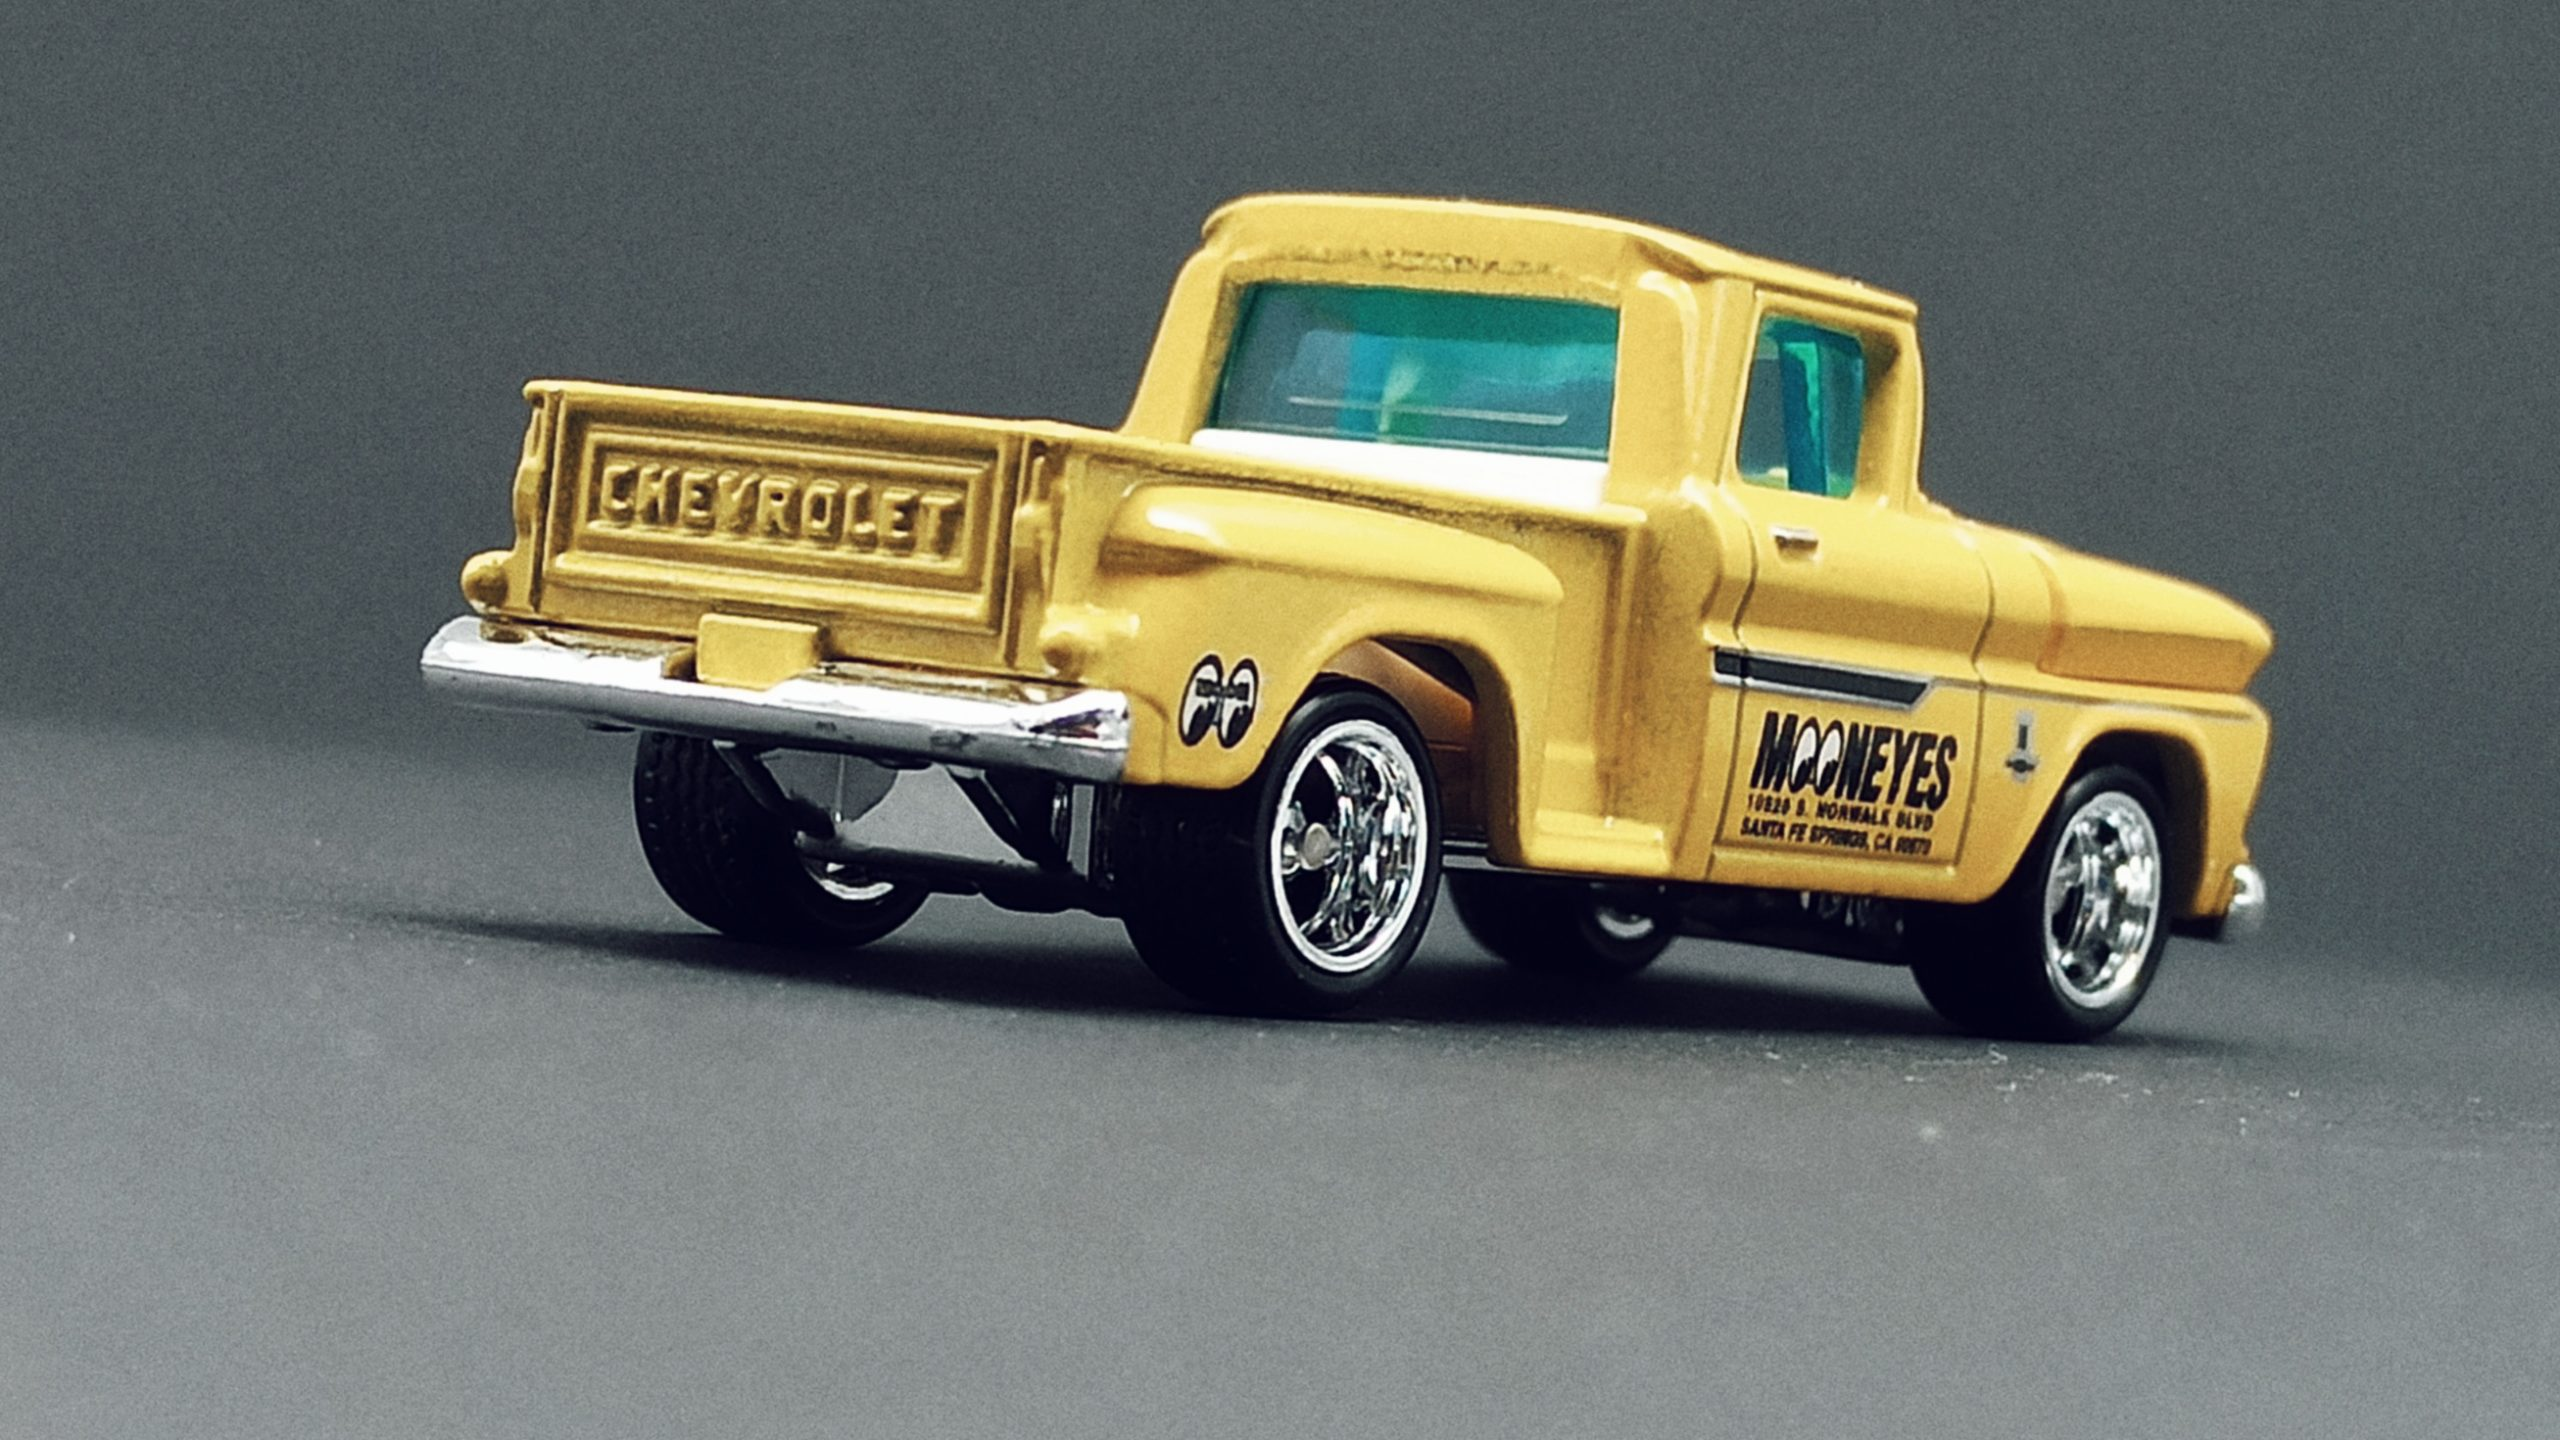 Matchbox Collectors Series '63 Chevy C10 Pickup Truck 1963 (GRK24) 2021 (3/20) yellow (Mooneyes) side angle